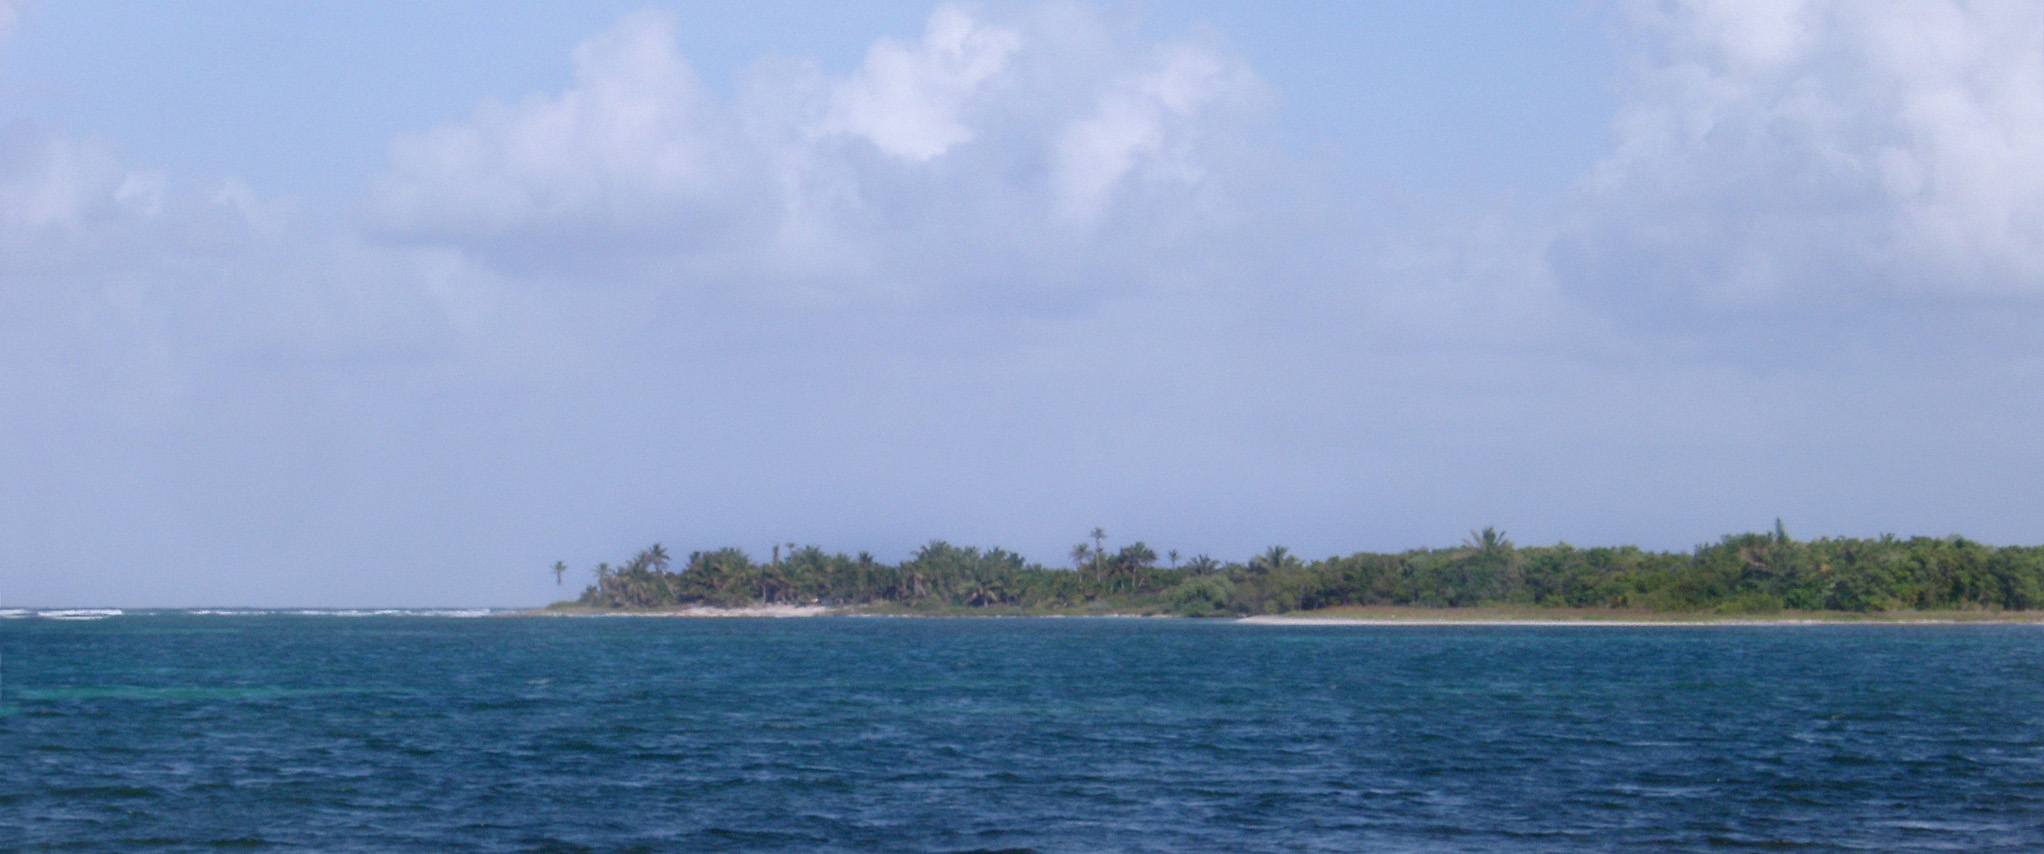 Beautiful troical coastline of the yucatan peninsula, Quintana Roo, Mexico